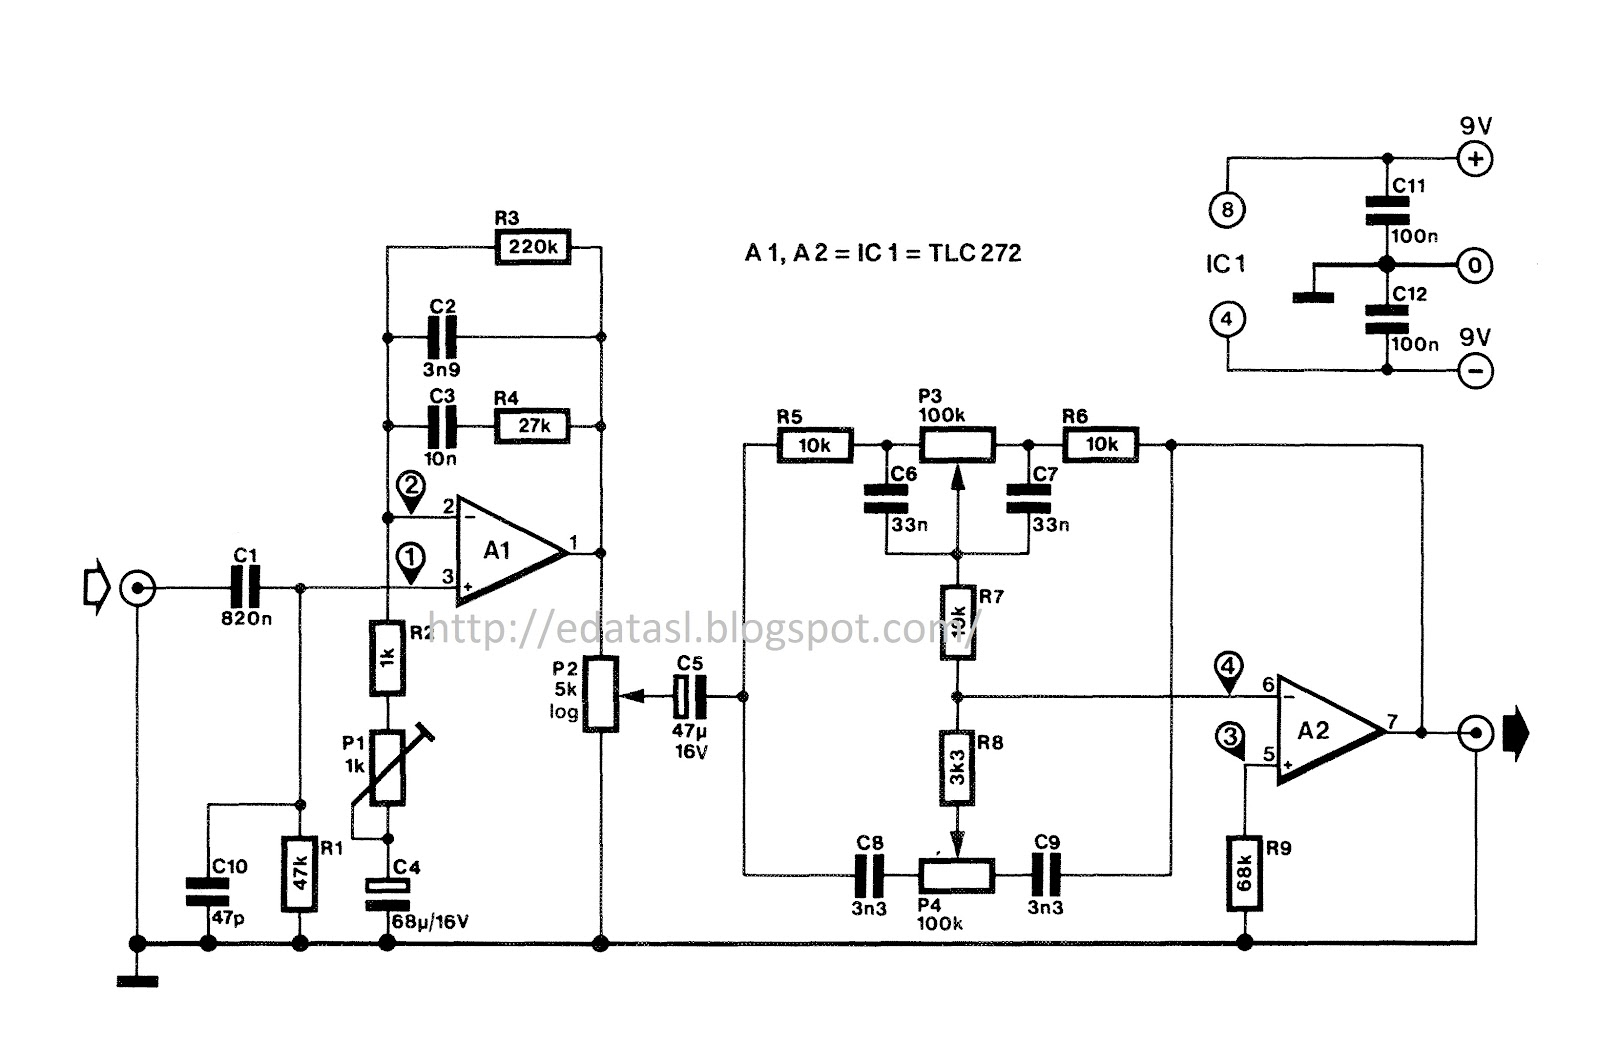 Electronic Circuit Componnent Data Lesson And Etc 2012 Circuits Lm3909 Led Flasher Simple 555 One Transistor Here Is The Good What I Found With Sharp Tone Controllerfor Best Performance Use Very Smooth Power Supply For This Shown